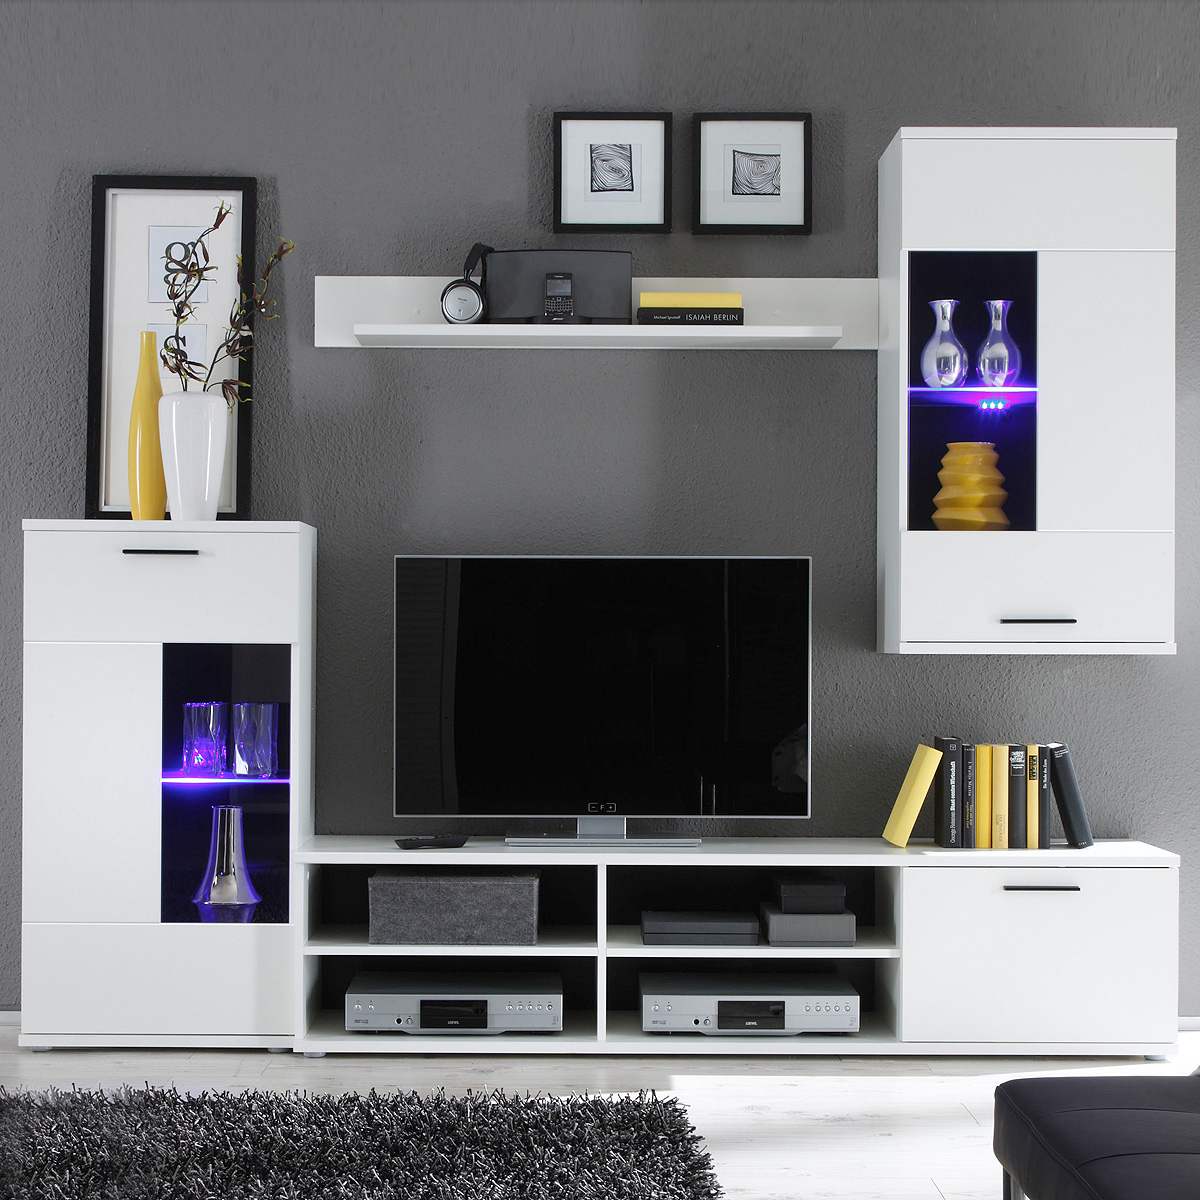 wohnwand frontal anbauwand wohnzimmer in wei inklusive led ebay. Black Bedroom Furniture Sets. Home Design Ideas